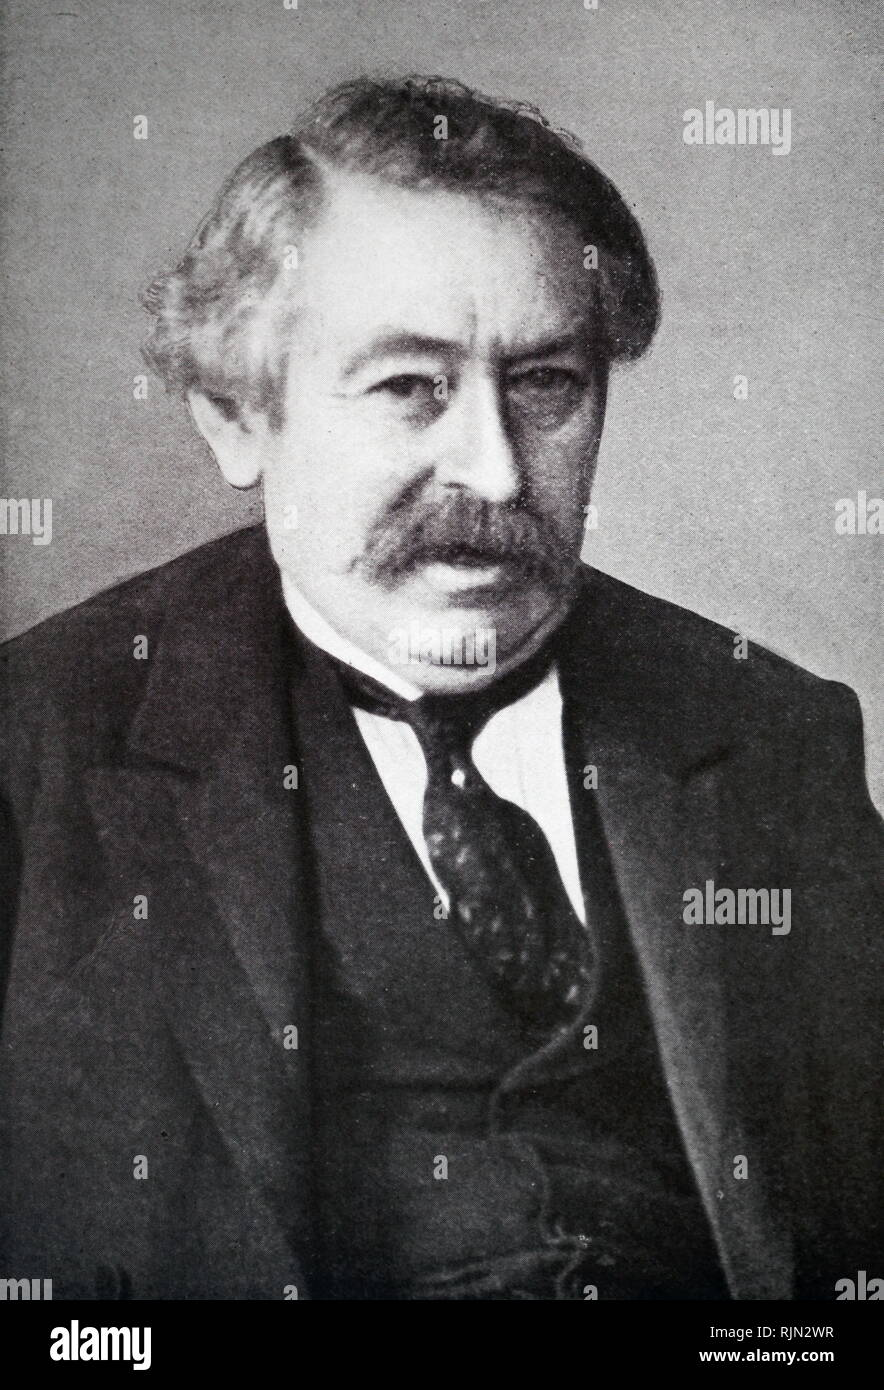 Aristide Briand (1862-1932) French socialist; premier eleven times; foreign minister 1925-32; Nobel peace prize 1926 - Stock Image